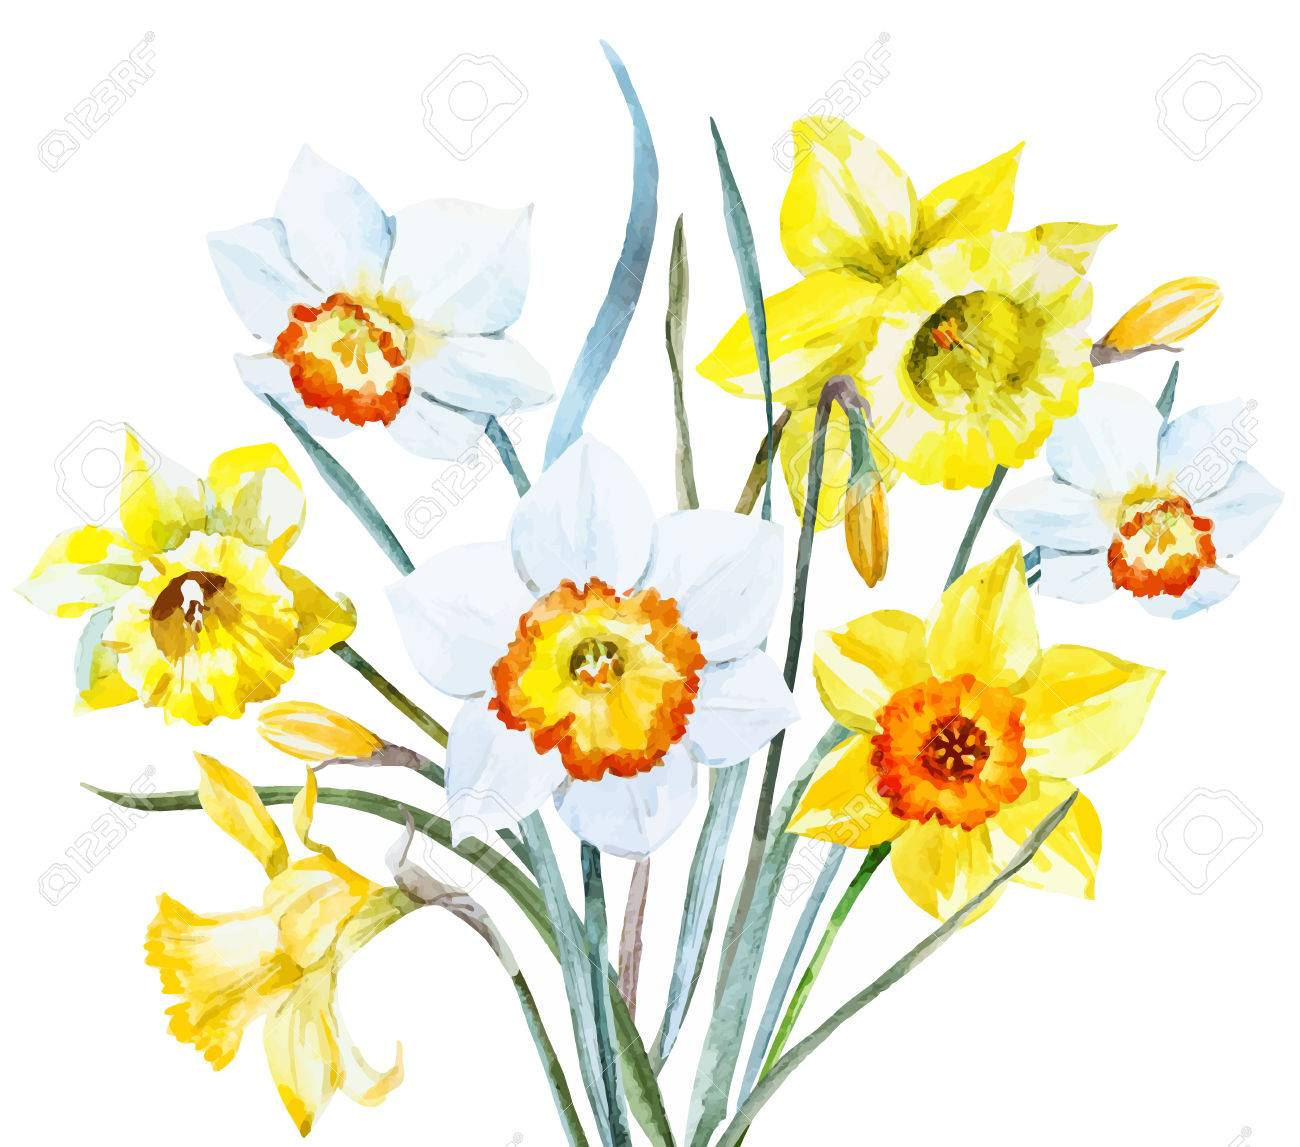 Beautiful Image With Nice Watercolor Spring Flowers Royalty Free